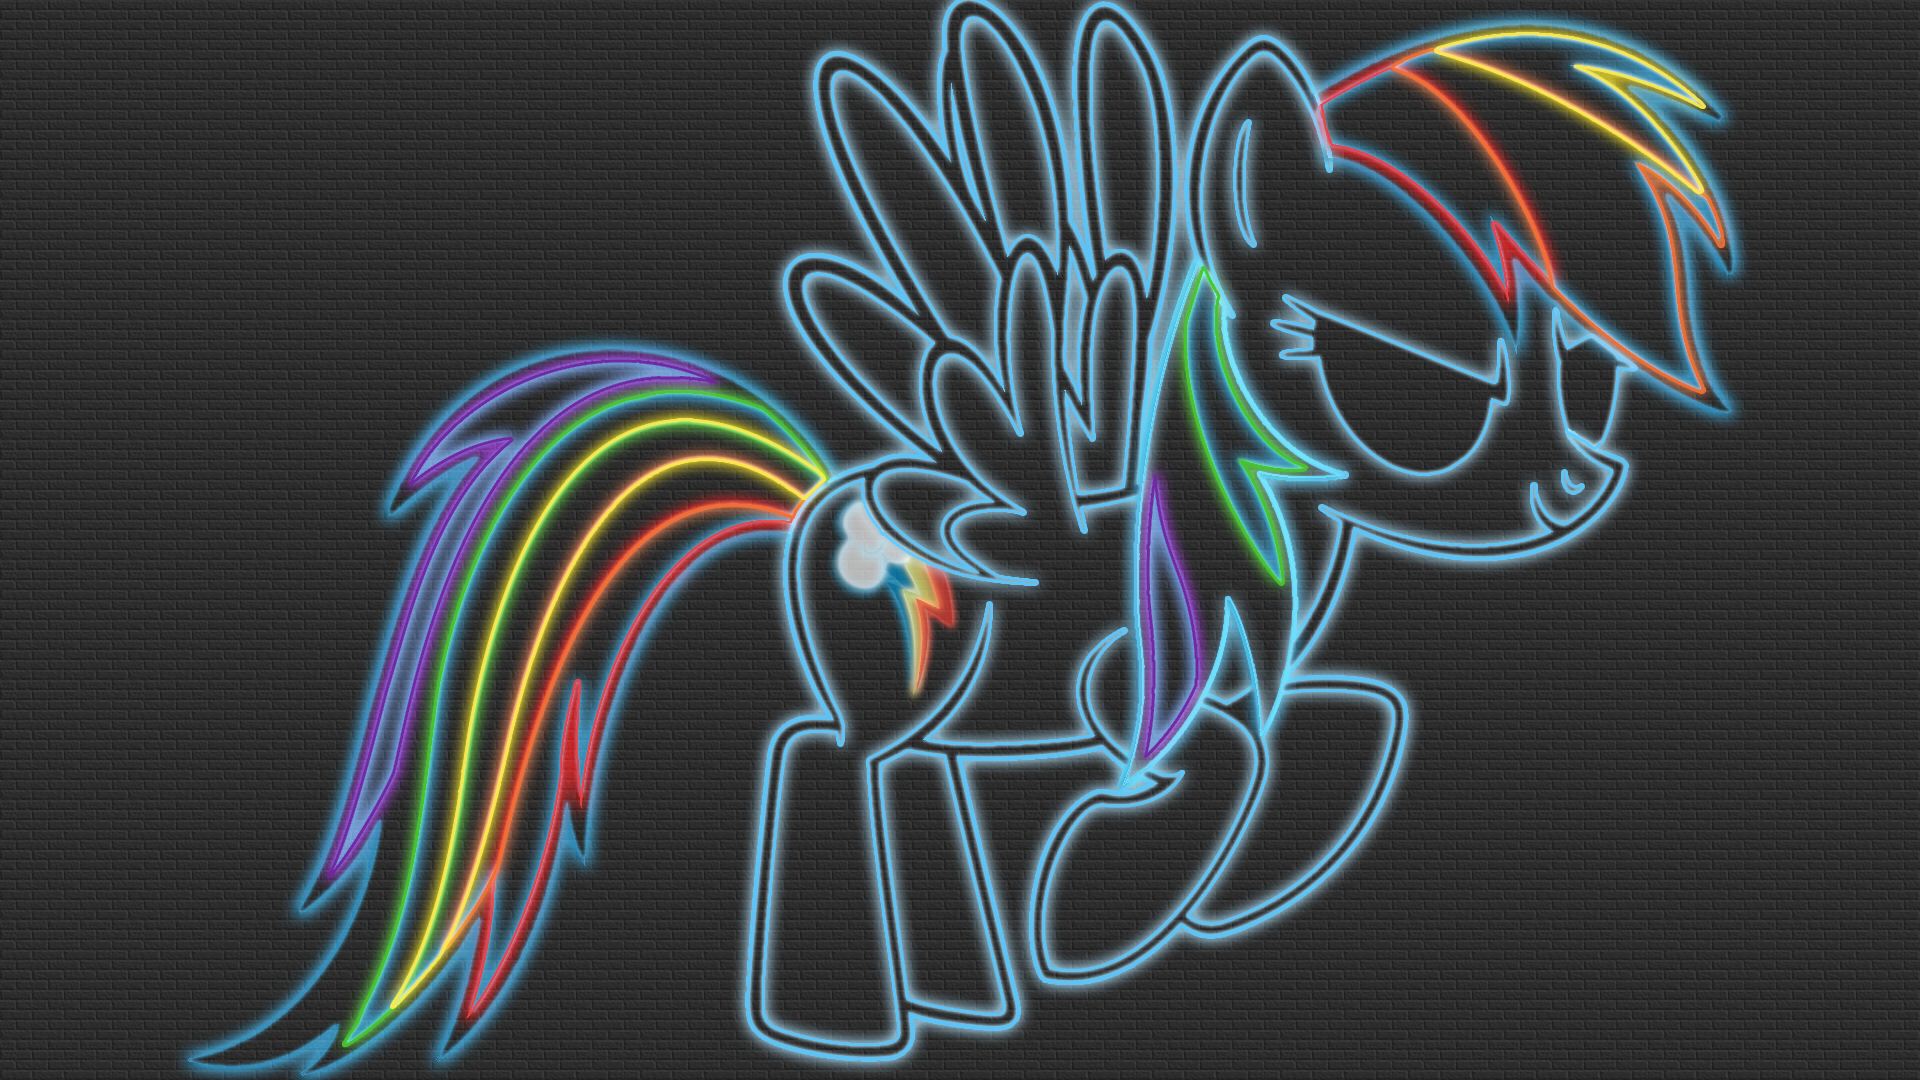 Rainbow Dash Neon-Glow Wallpaper by GT4tube on DeviantArt